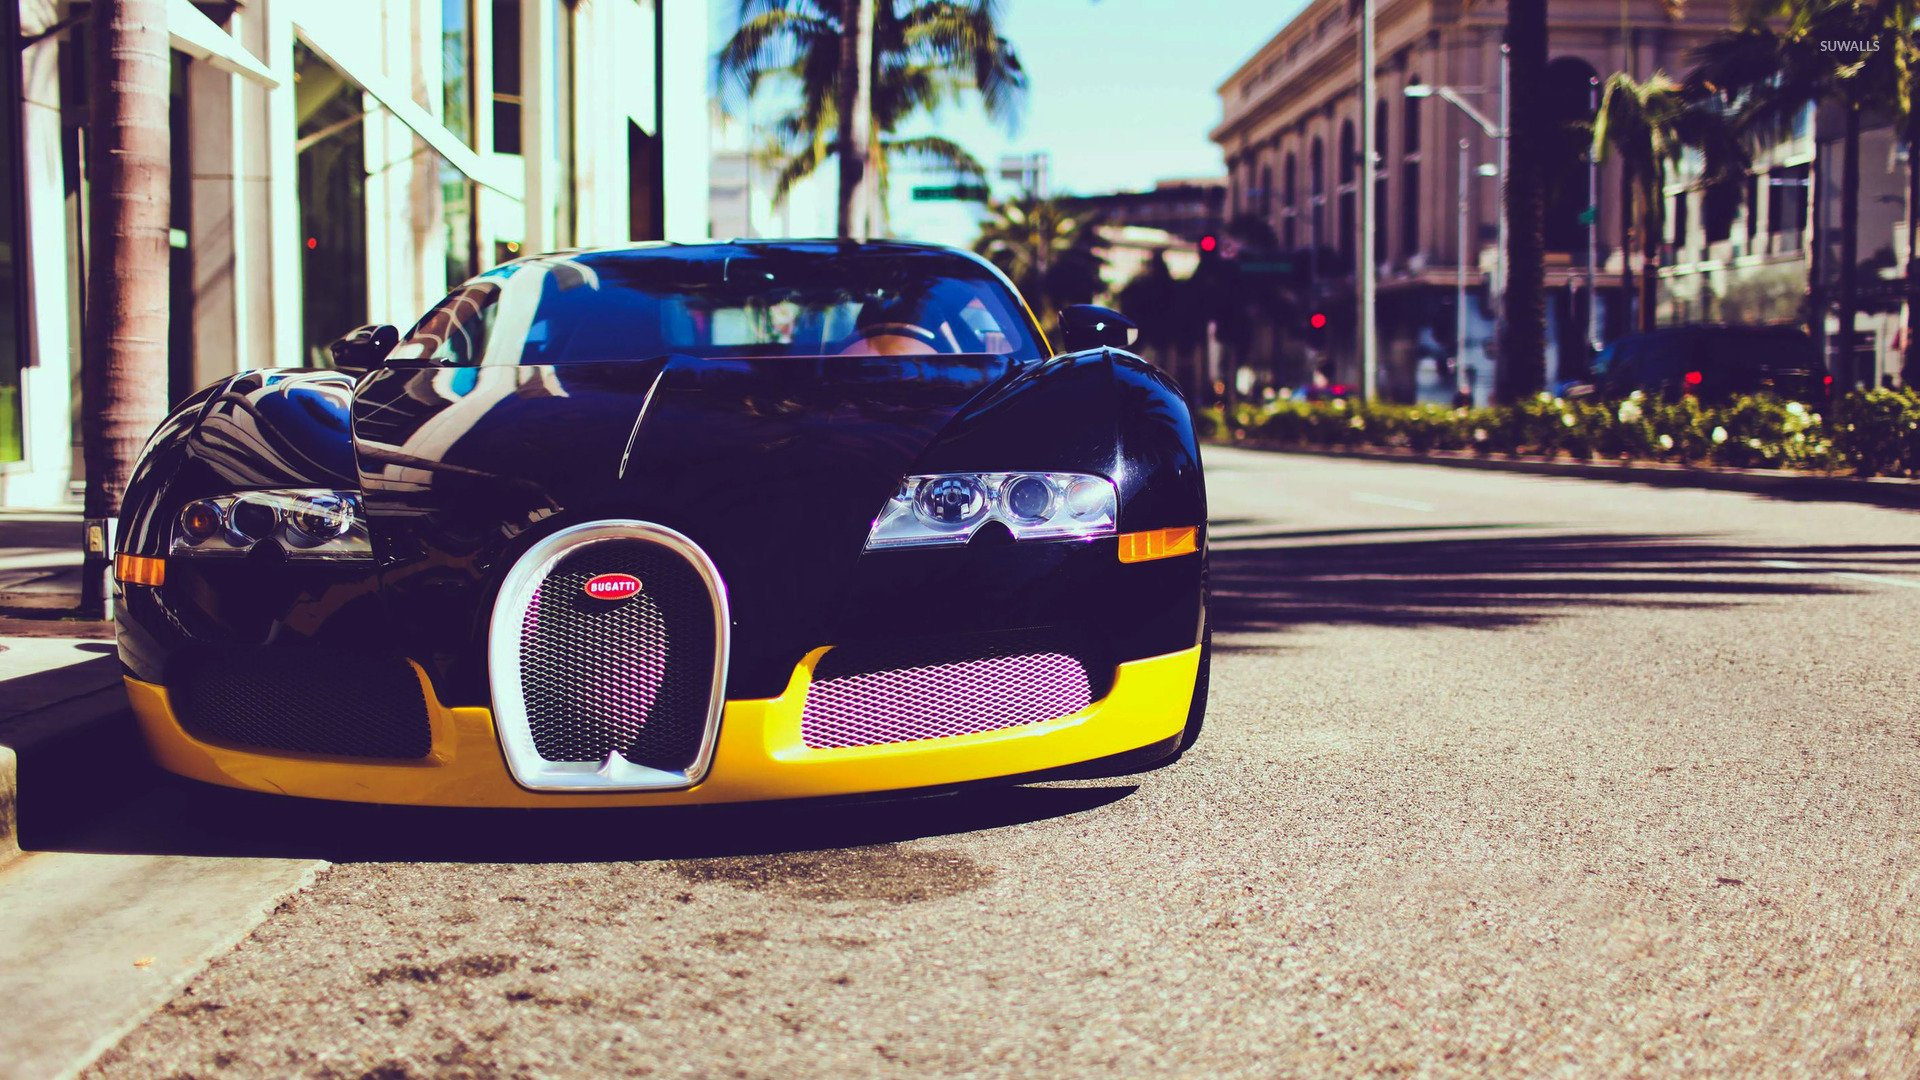 Bugatti Veyron EB 164 [3] wallpaper   Car wallpapers   16102 1920x1080